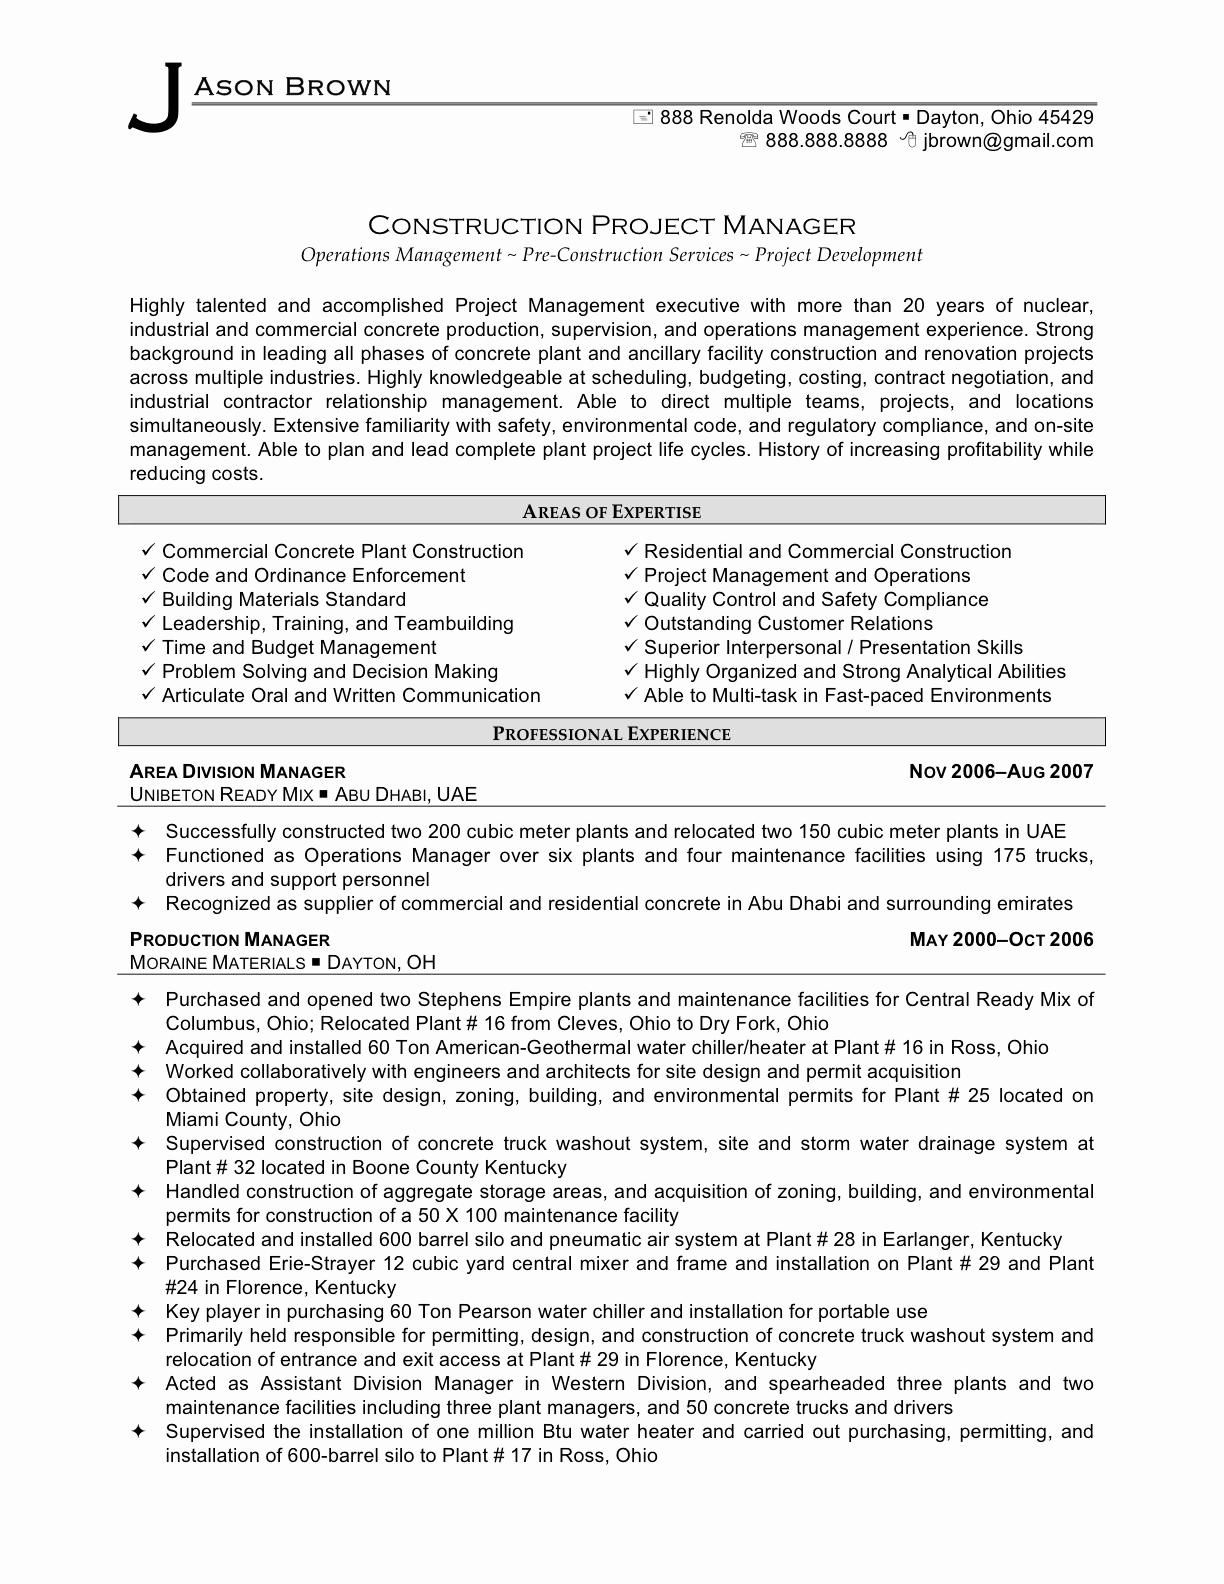 Project Manager Resume Templates - Project Coordinator Resume Samples Lovely Oil and Gas Resume